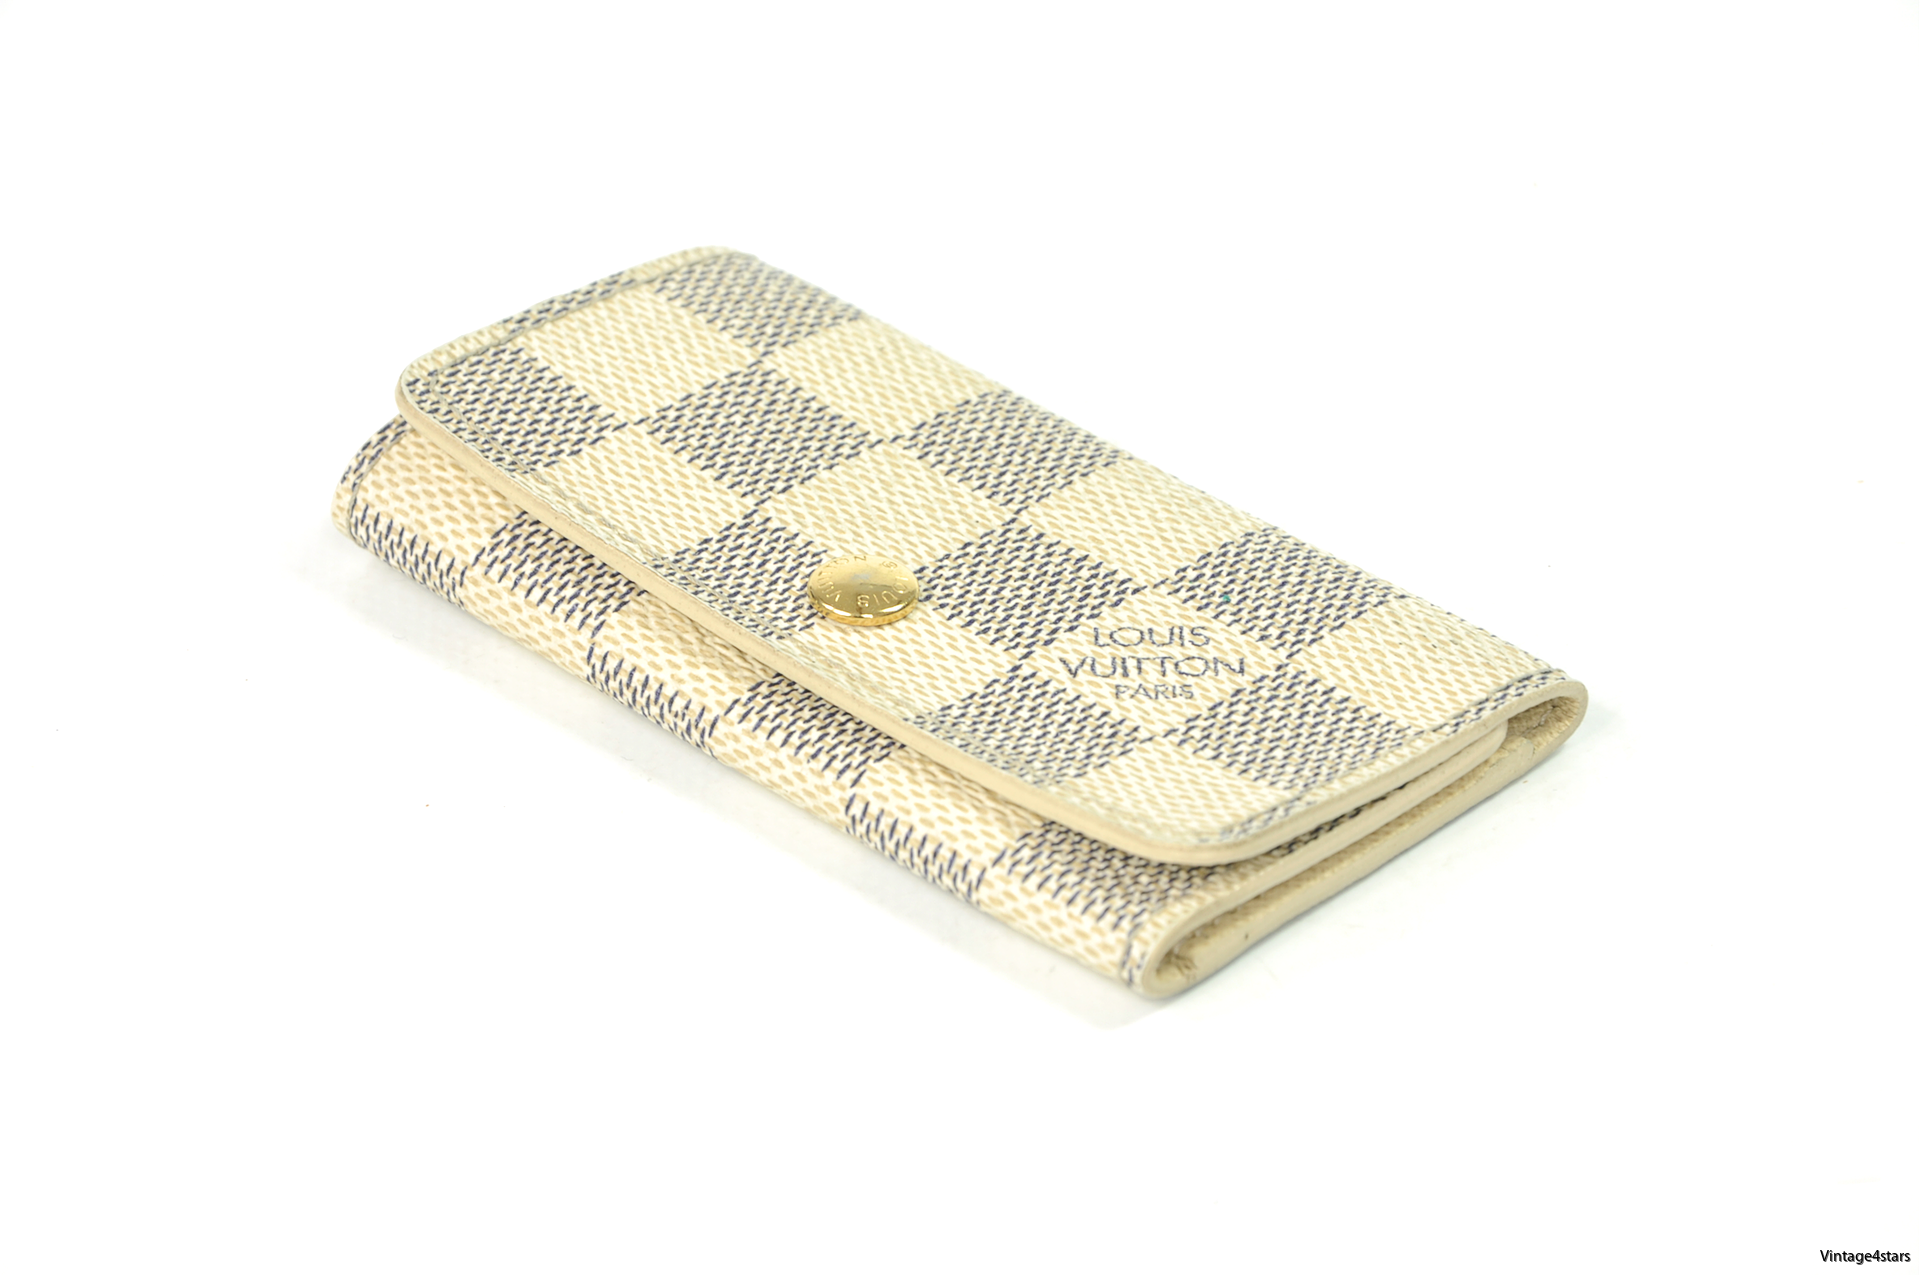 Louis Vuitton 4 Keys Damier Azur 1